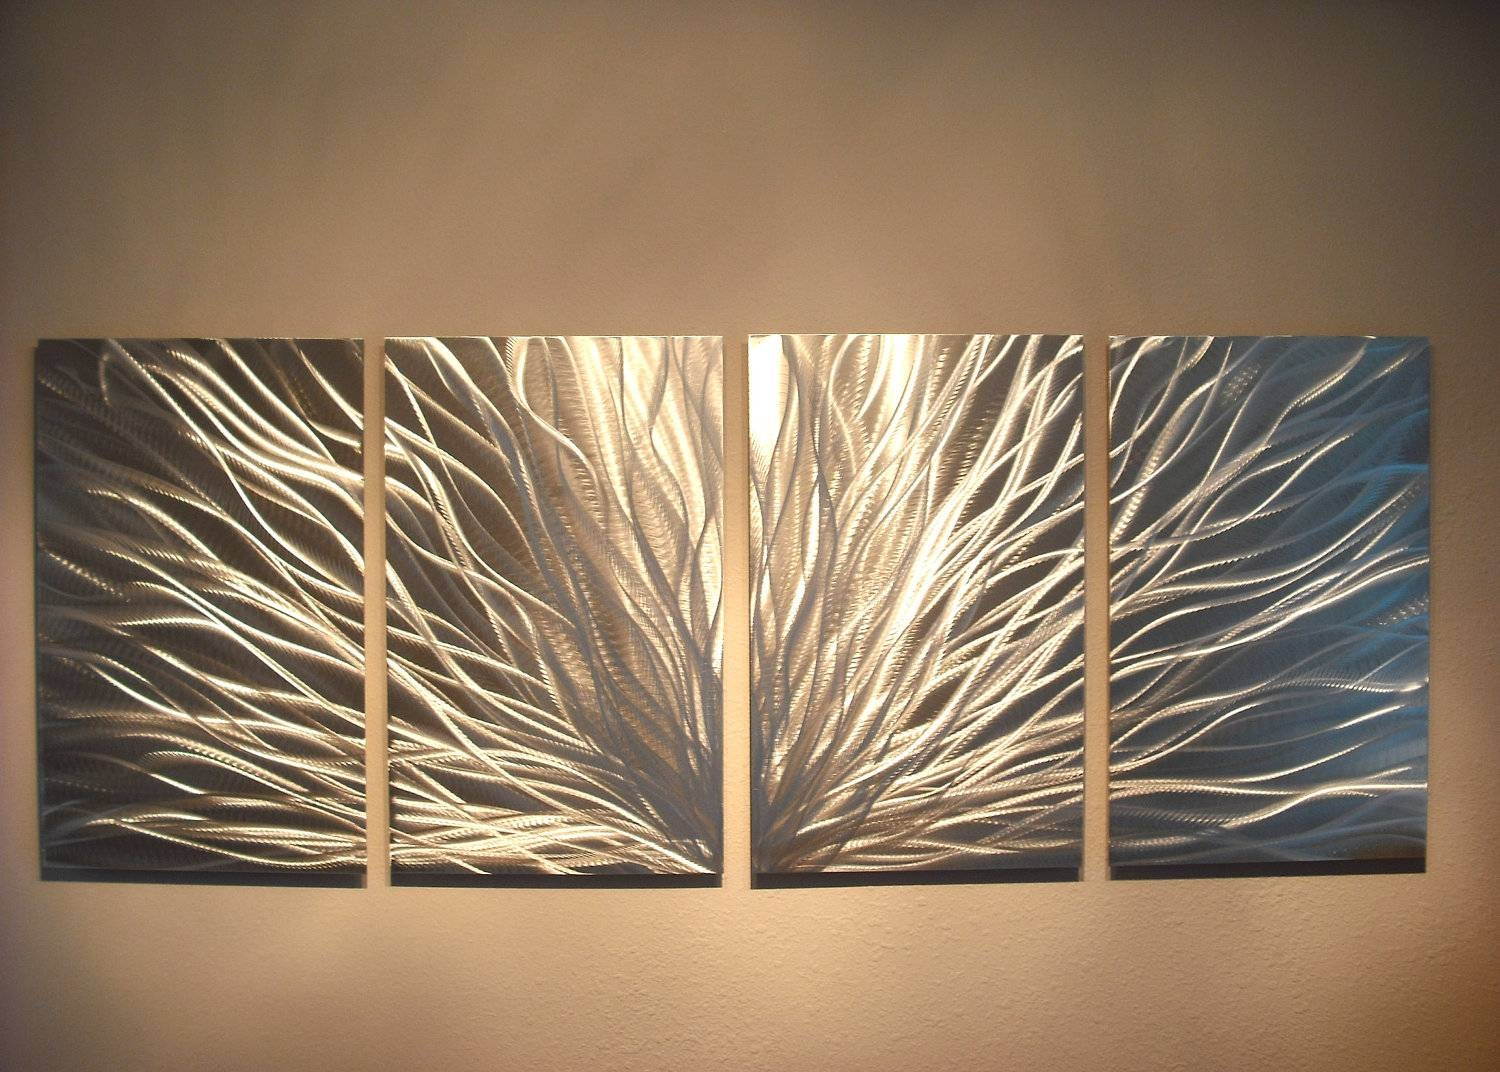 Radiance – Abstract Metal Wall Art Contemporary Modern Decor Throughout Most Current Modern Metal Wall Art (View 14 of 20)